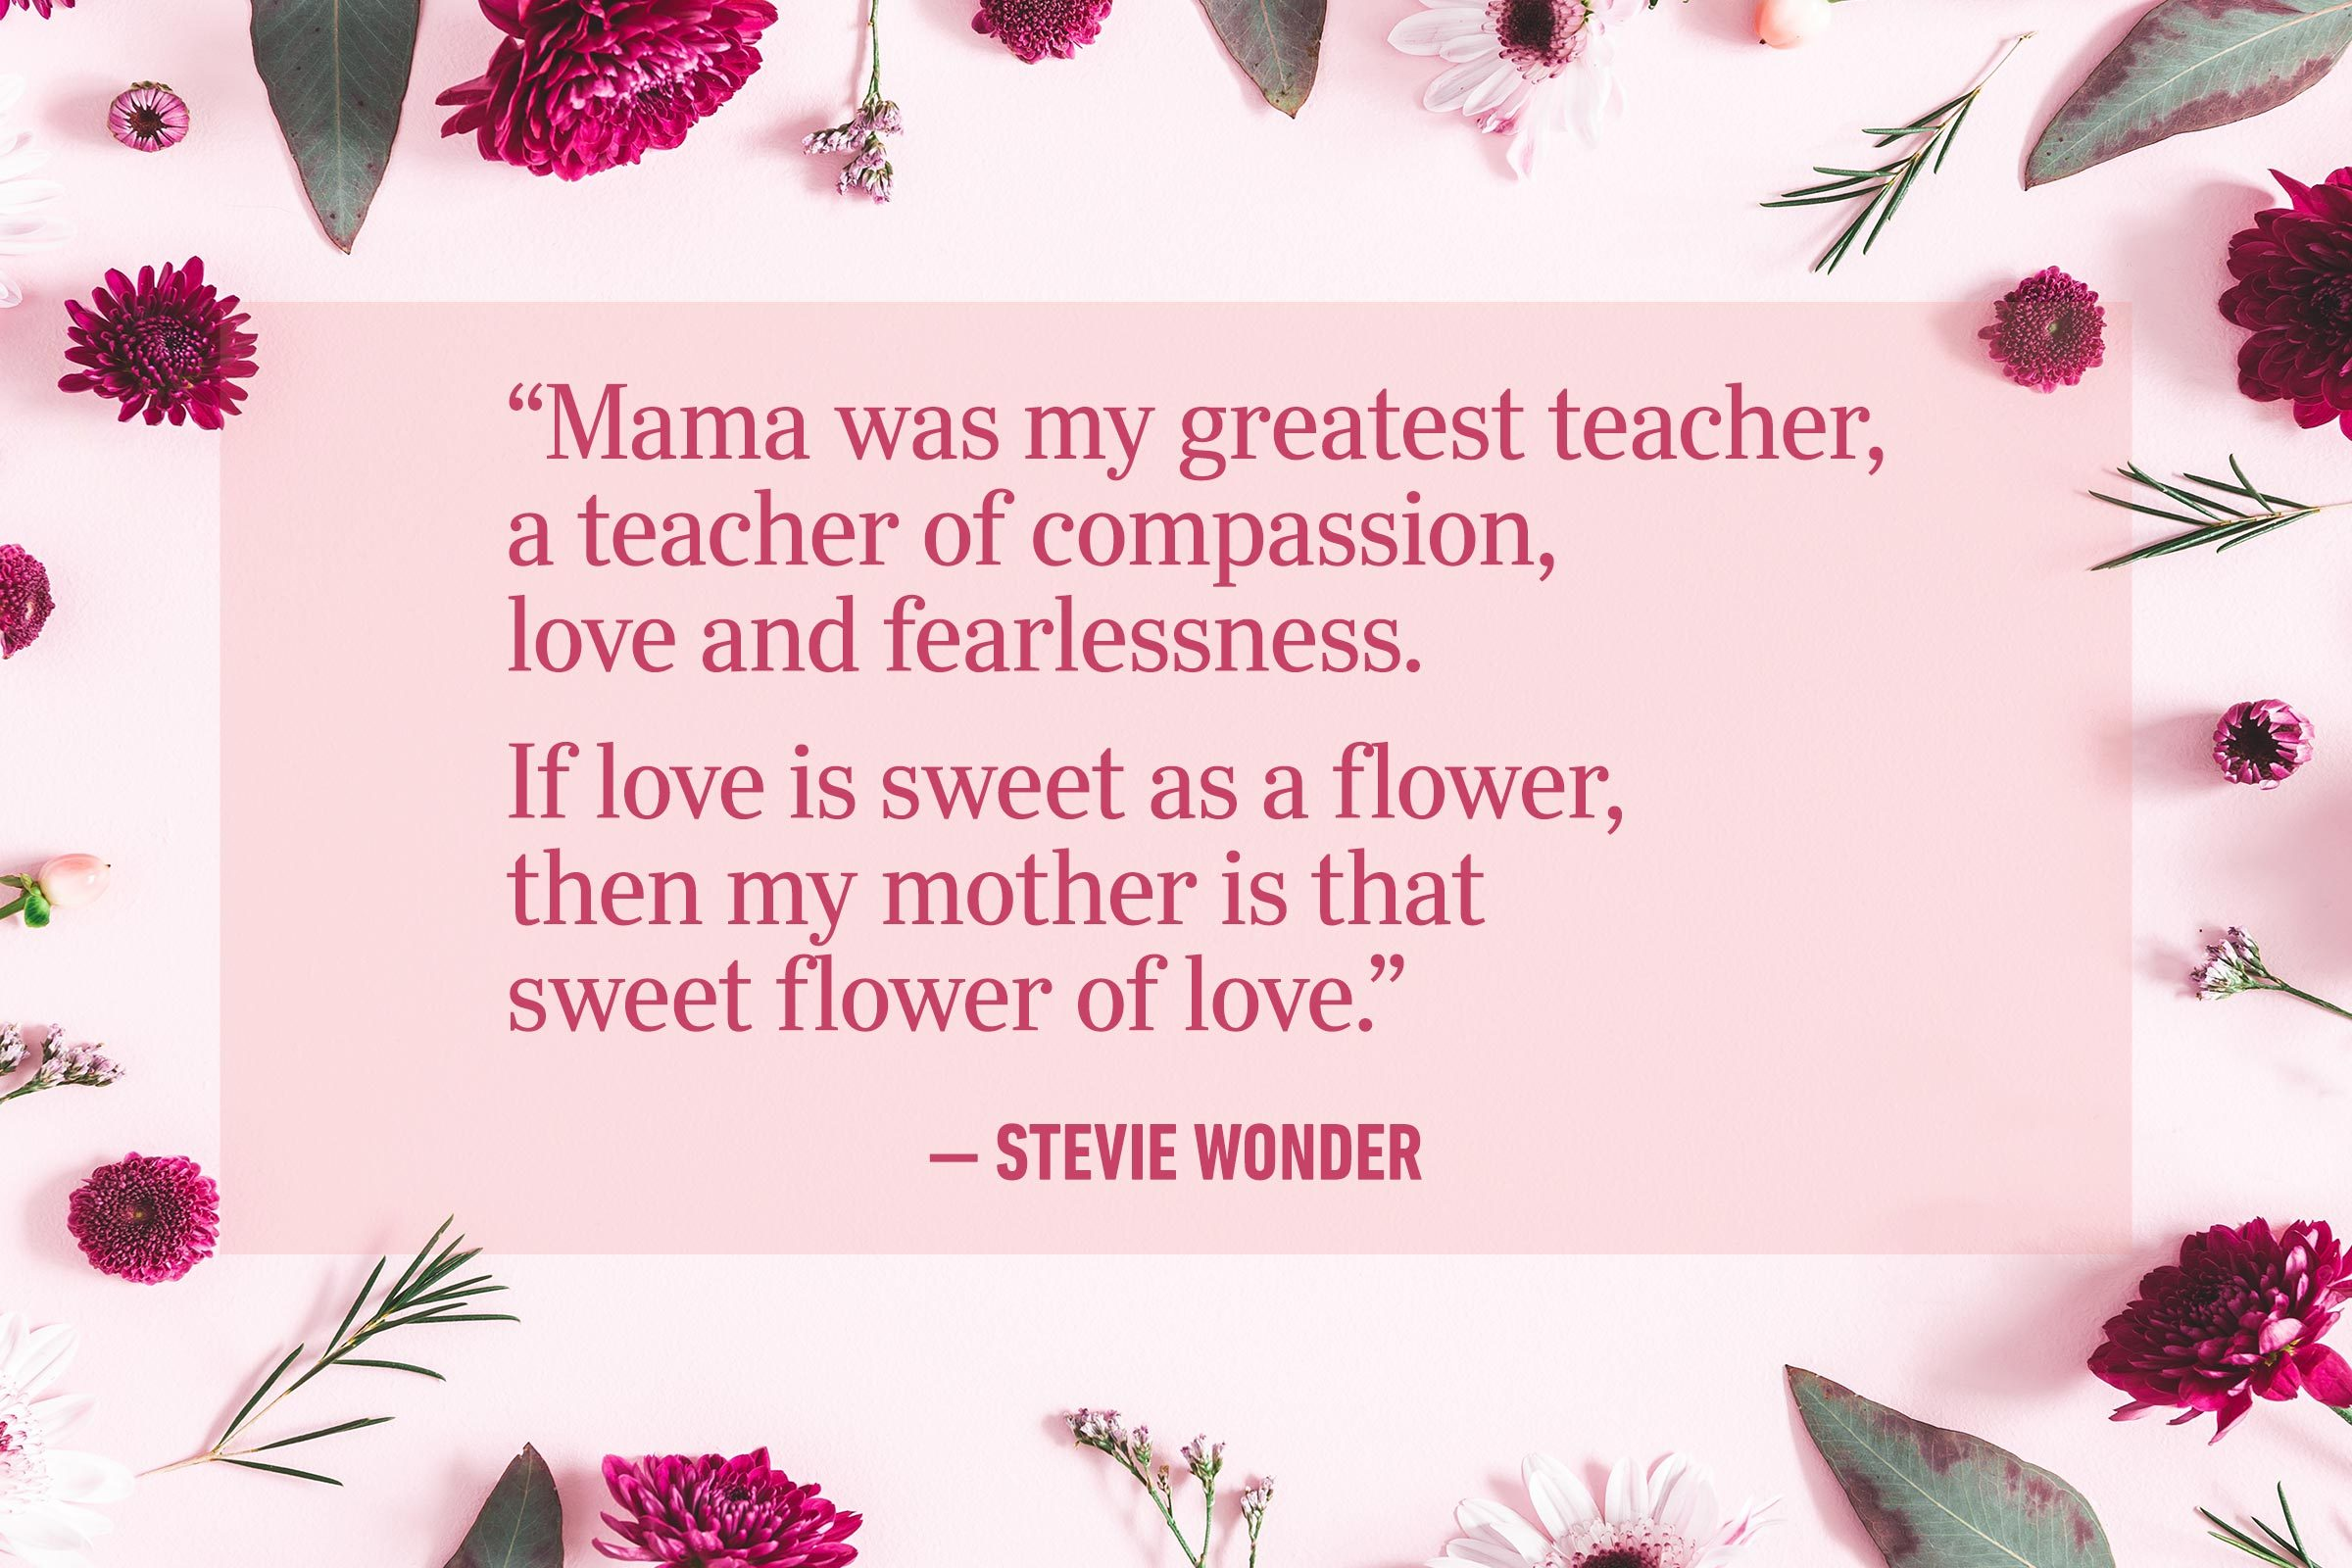 """""""Mama was my greatest teacher, a teacher of compassion, love and fearlessness. If love is sweet as a flower, then my mother is that sweet flower of love."""" —Stevie Wonder"""